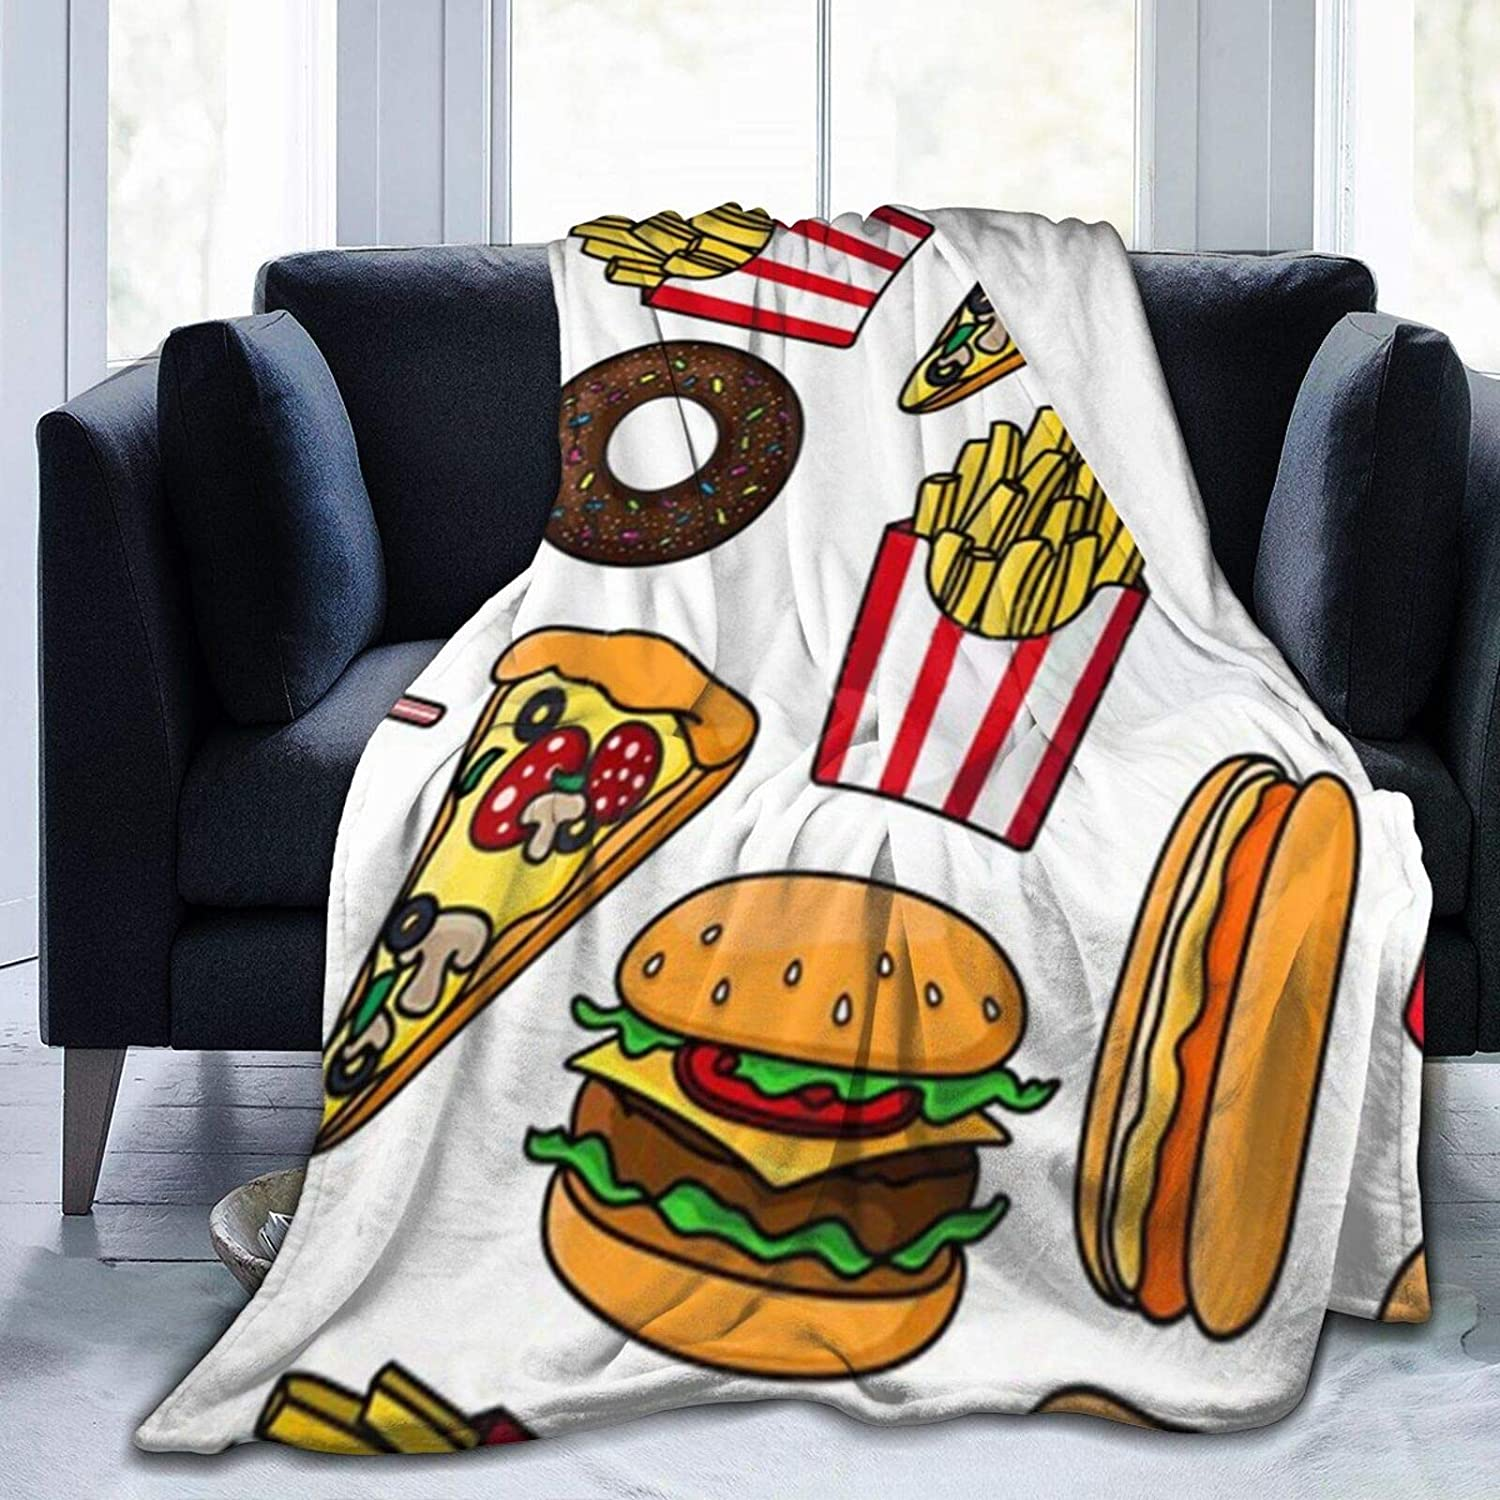 Junk Food Drink Pattern Cheeseburger and Drink Blanket Ultra-Soft Micro Fleece Blanket Throw Super Soft Fuzzy Lightweight Blanket for Bed Couch Living Room,60